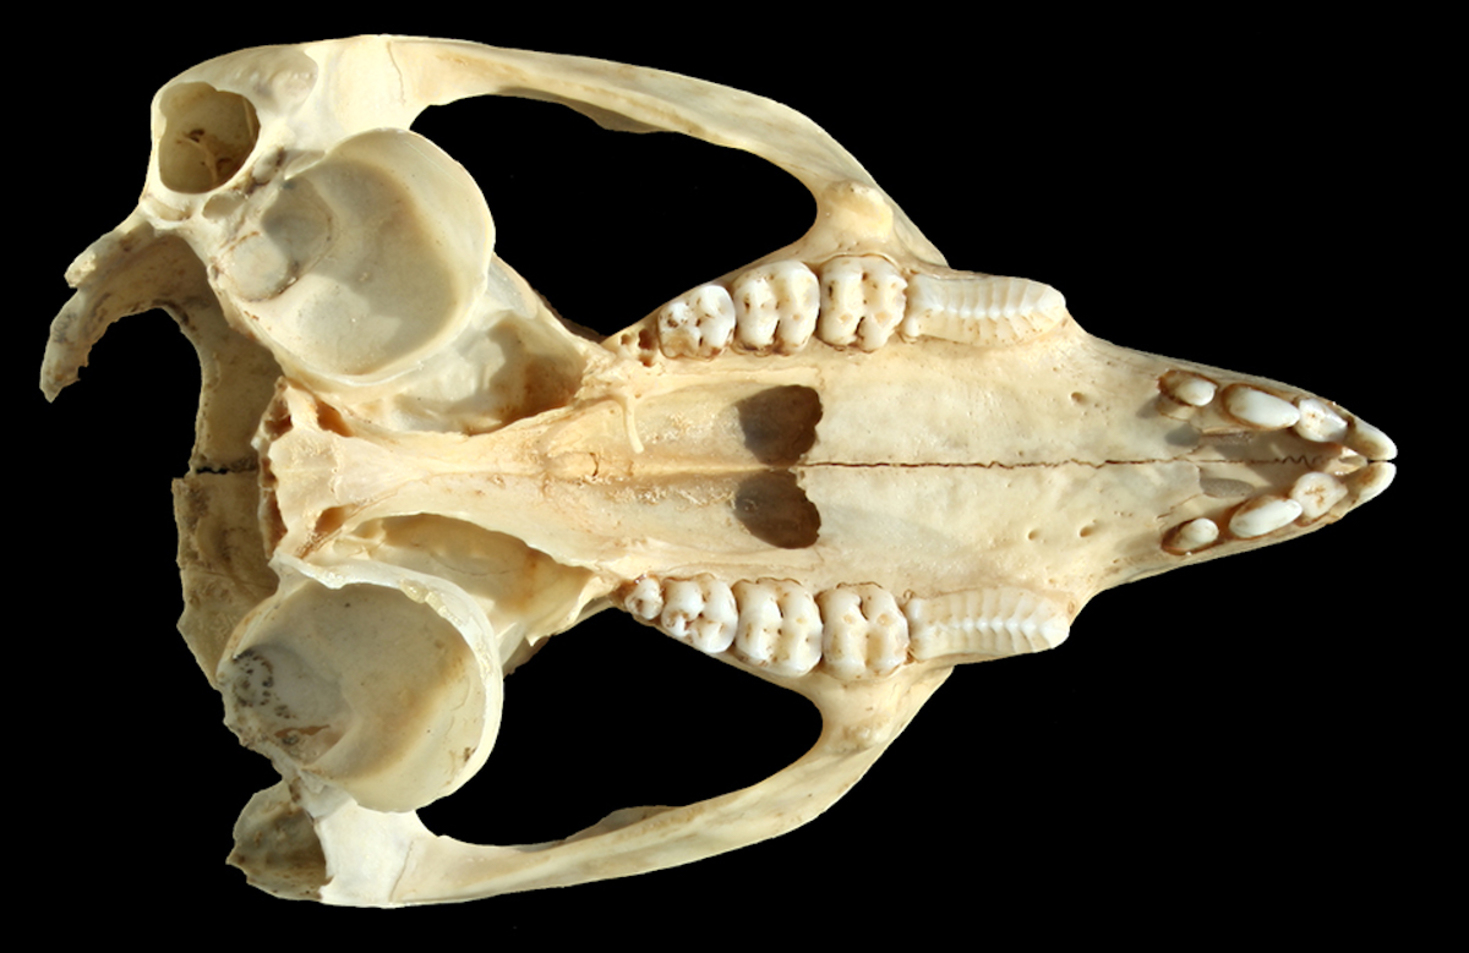 An incomplete skull and jaws are all that remains of the only individual of Bettongia anhydra ever to be found alive. The rest of the animal probably went into the cooks pot! - Image Credit: Matthew McDowell, Author provided